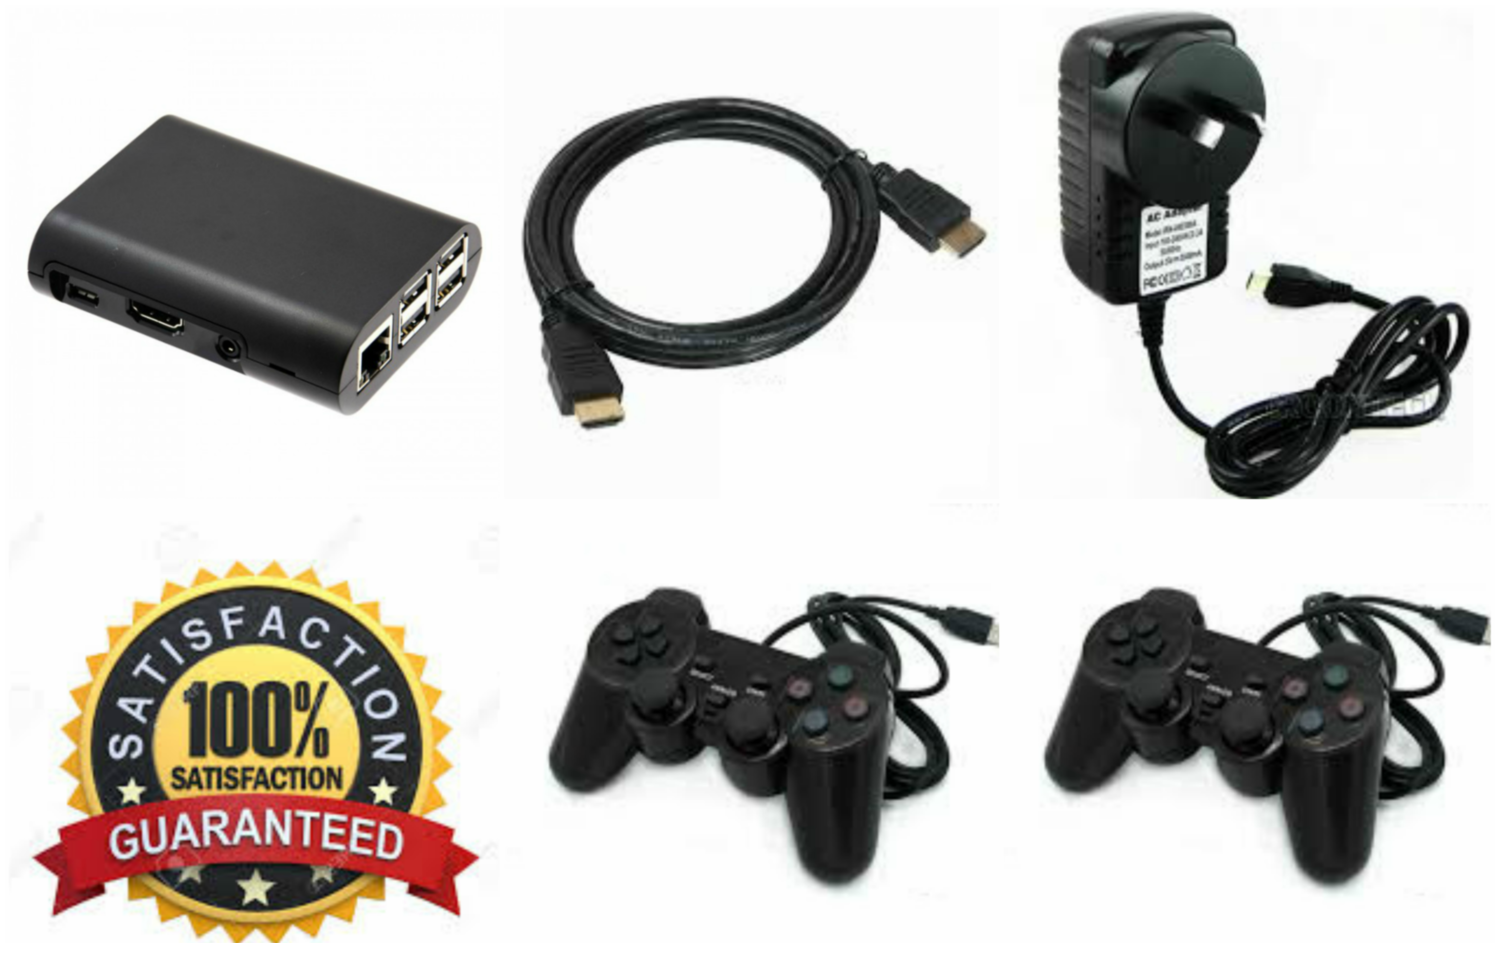 MICRO CADE OVER 35,000 RETRO GAMES, 2 X PLAYSTATION USB WIRED CONTROLLERS.